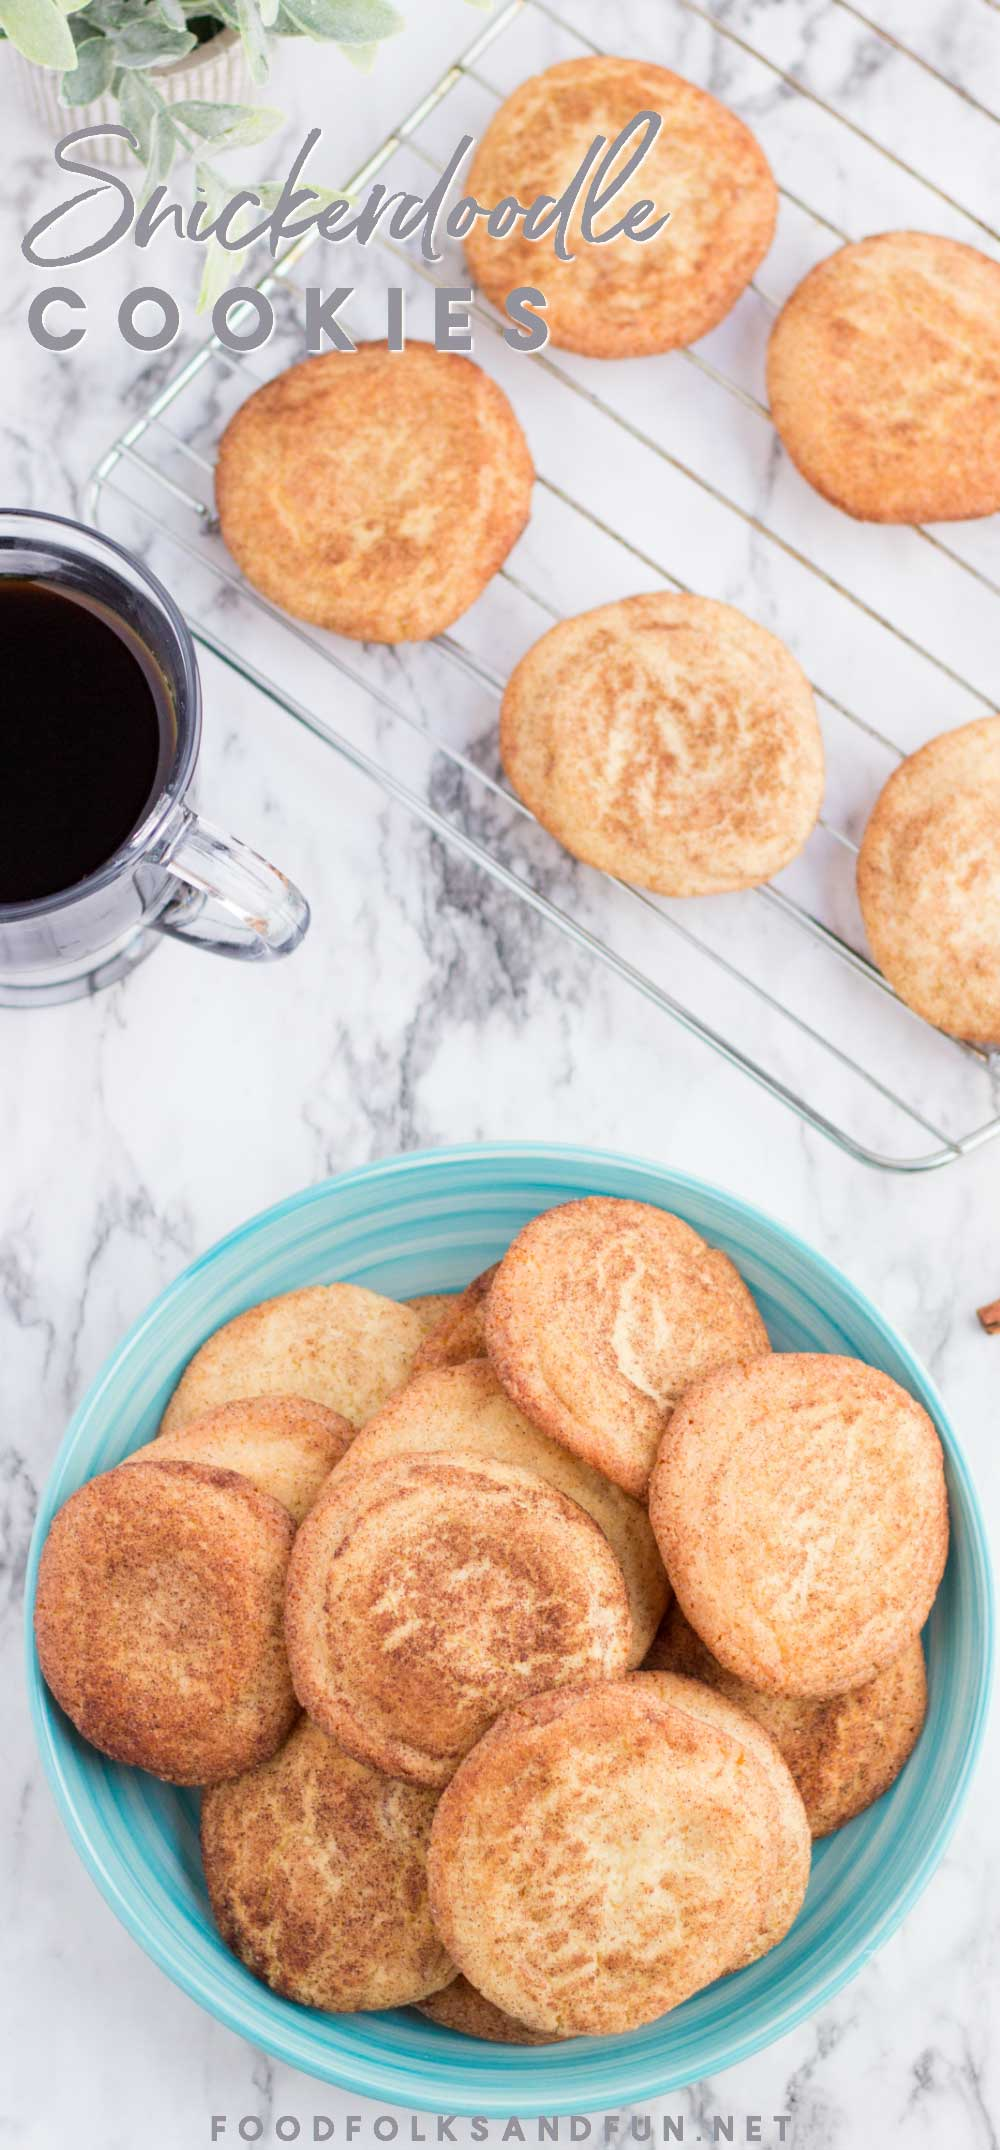 Snickerdoodle cookies on a plate and a wire rack